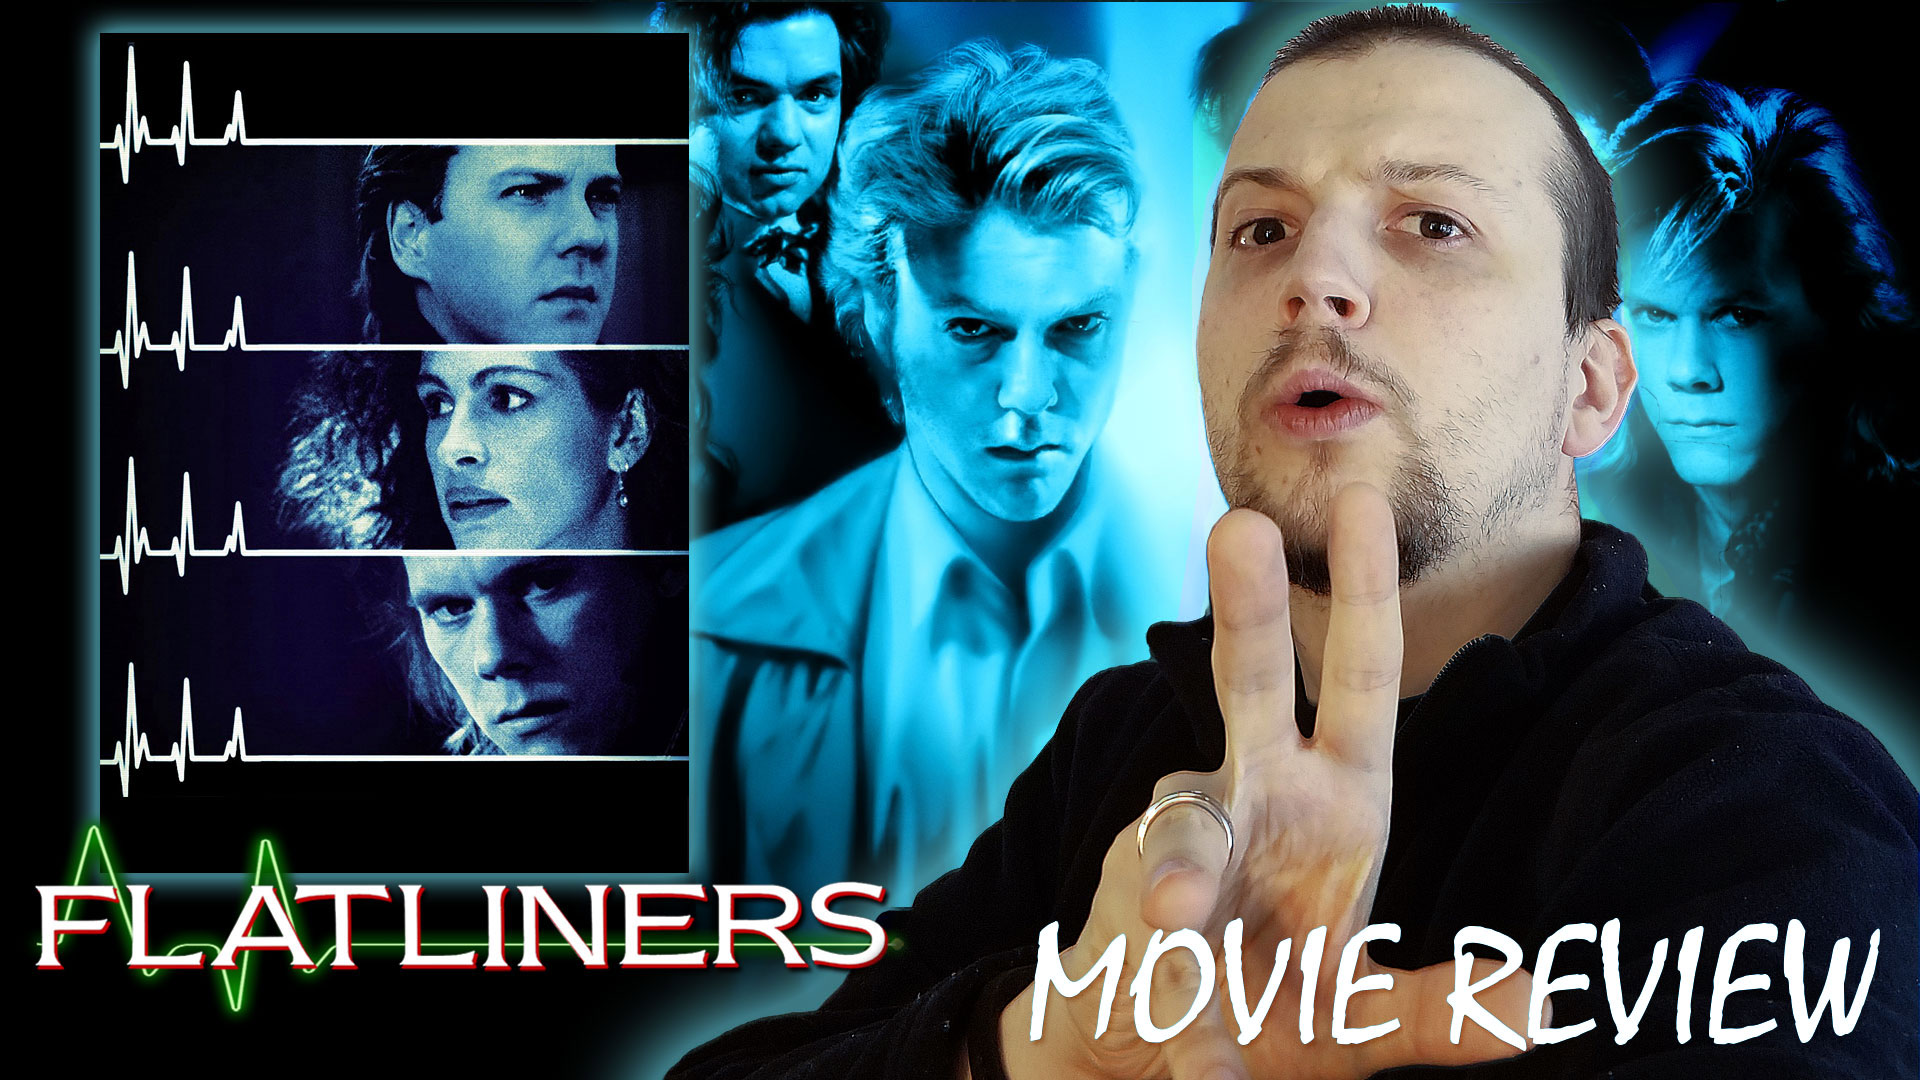 Review – Flatliners (1990)